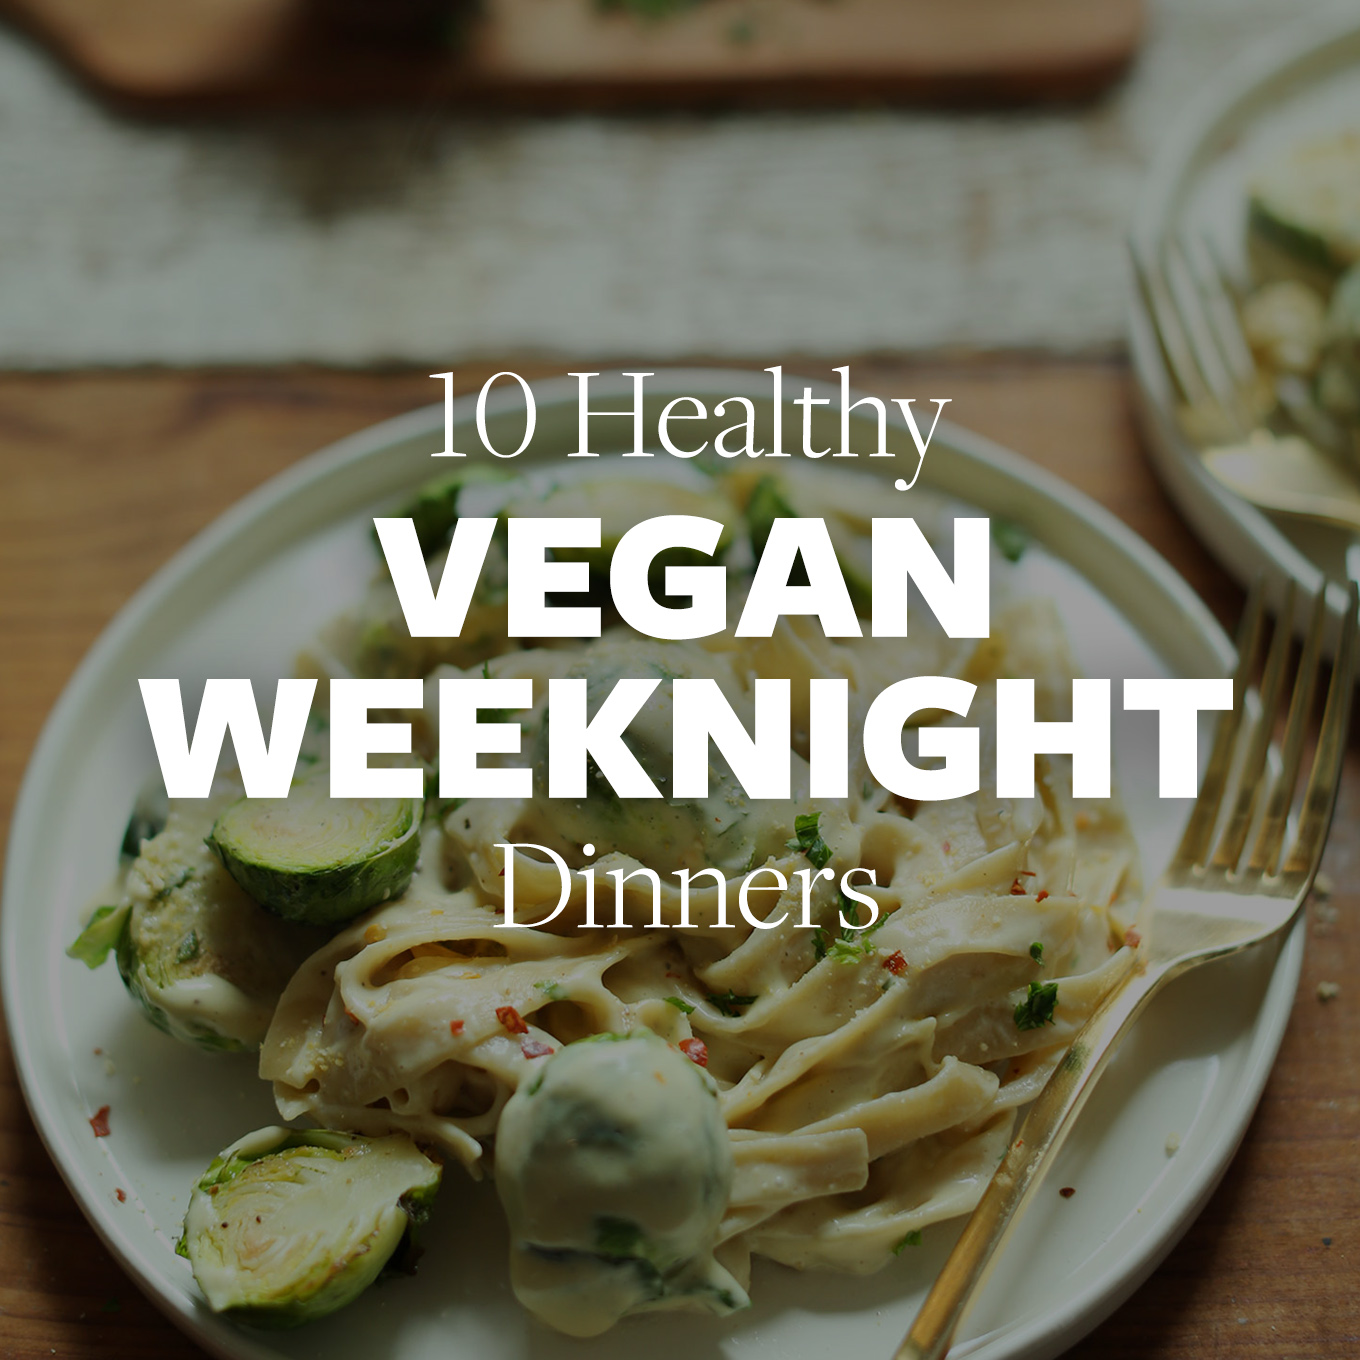 Plate of alfredo for our 10 Healthy Vegan Weeknight Dinners recipe roundup